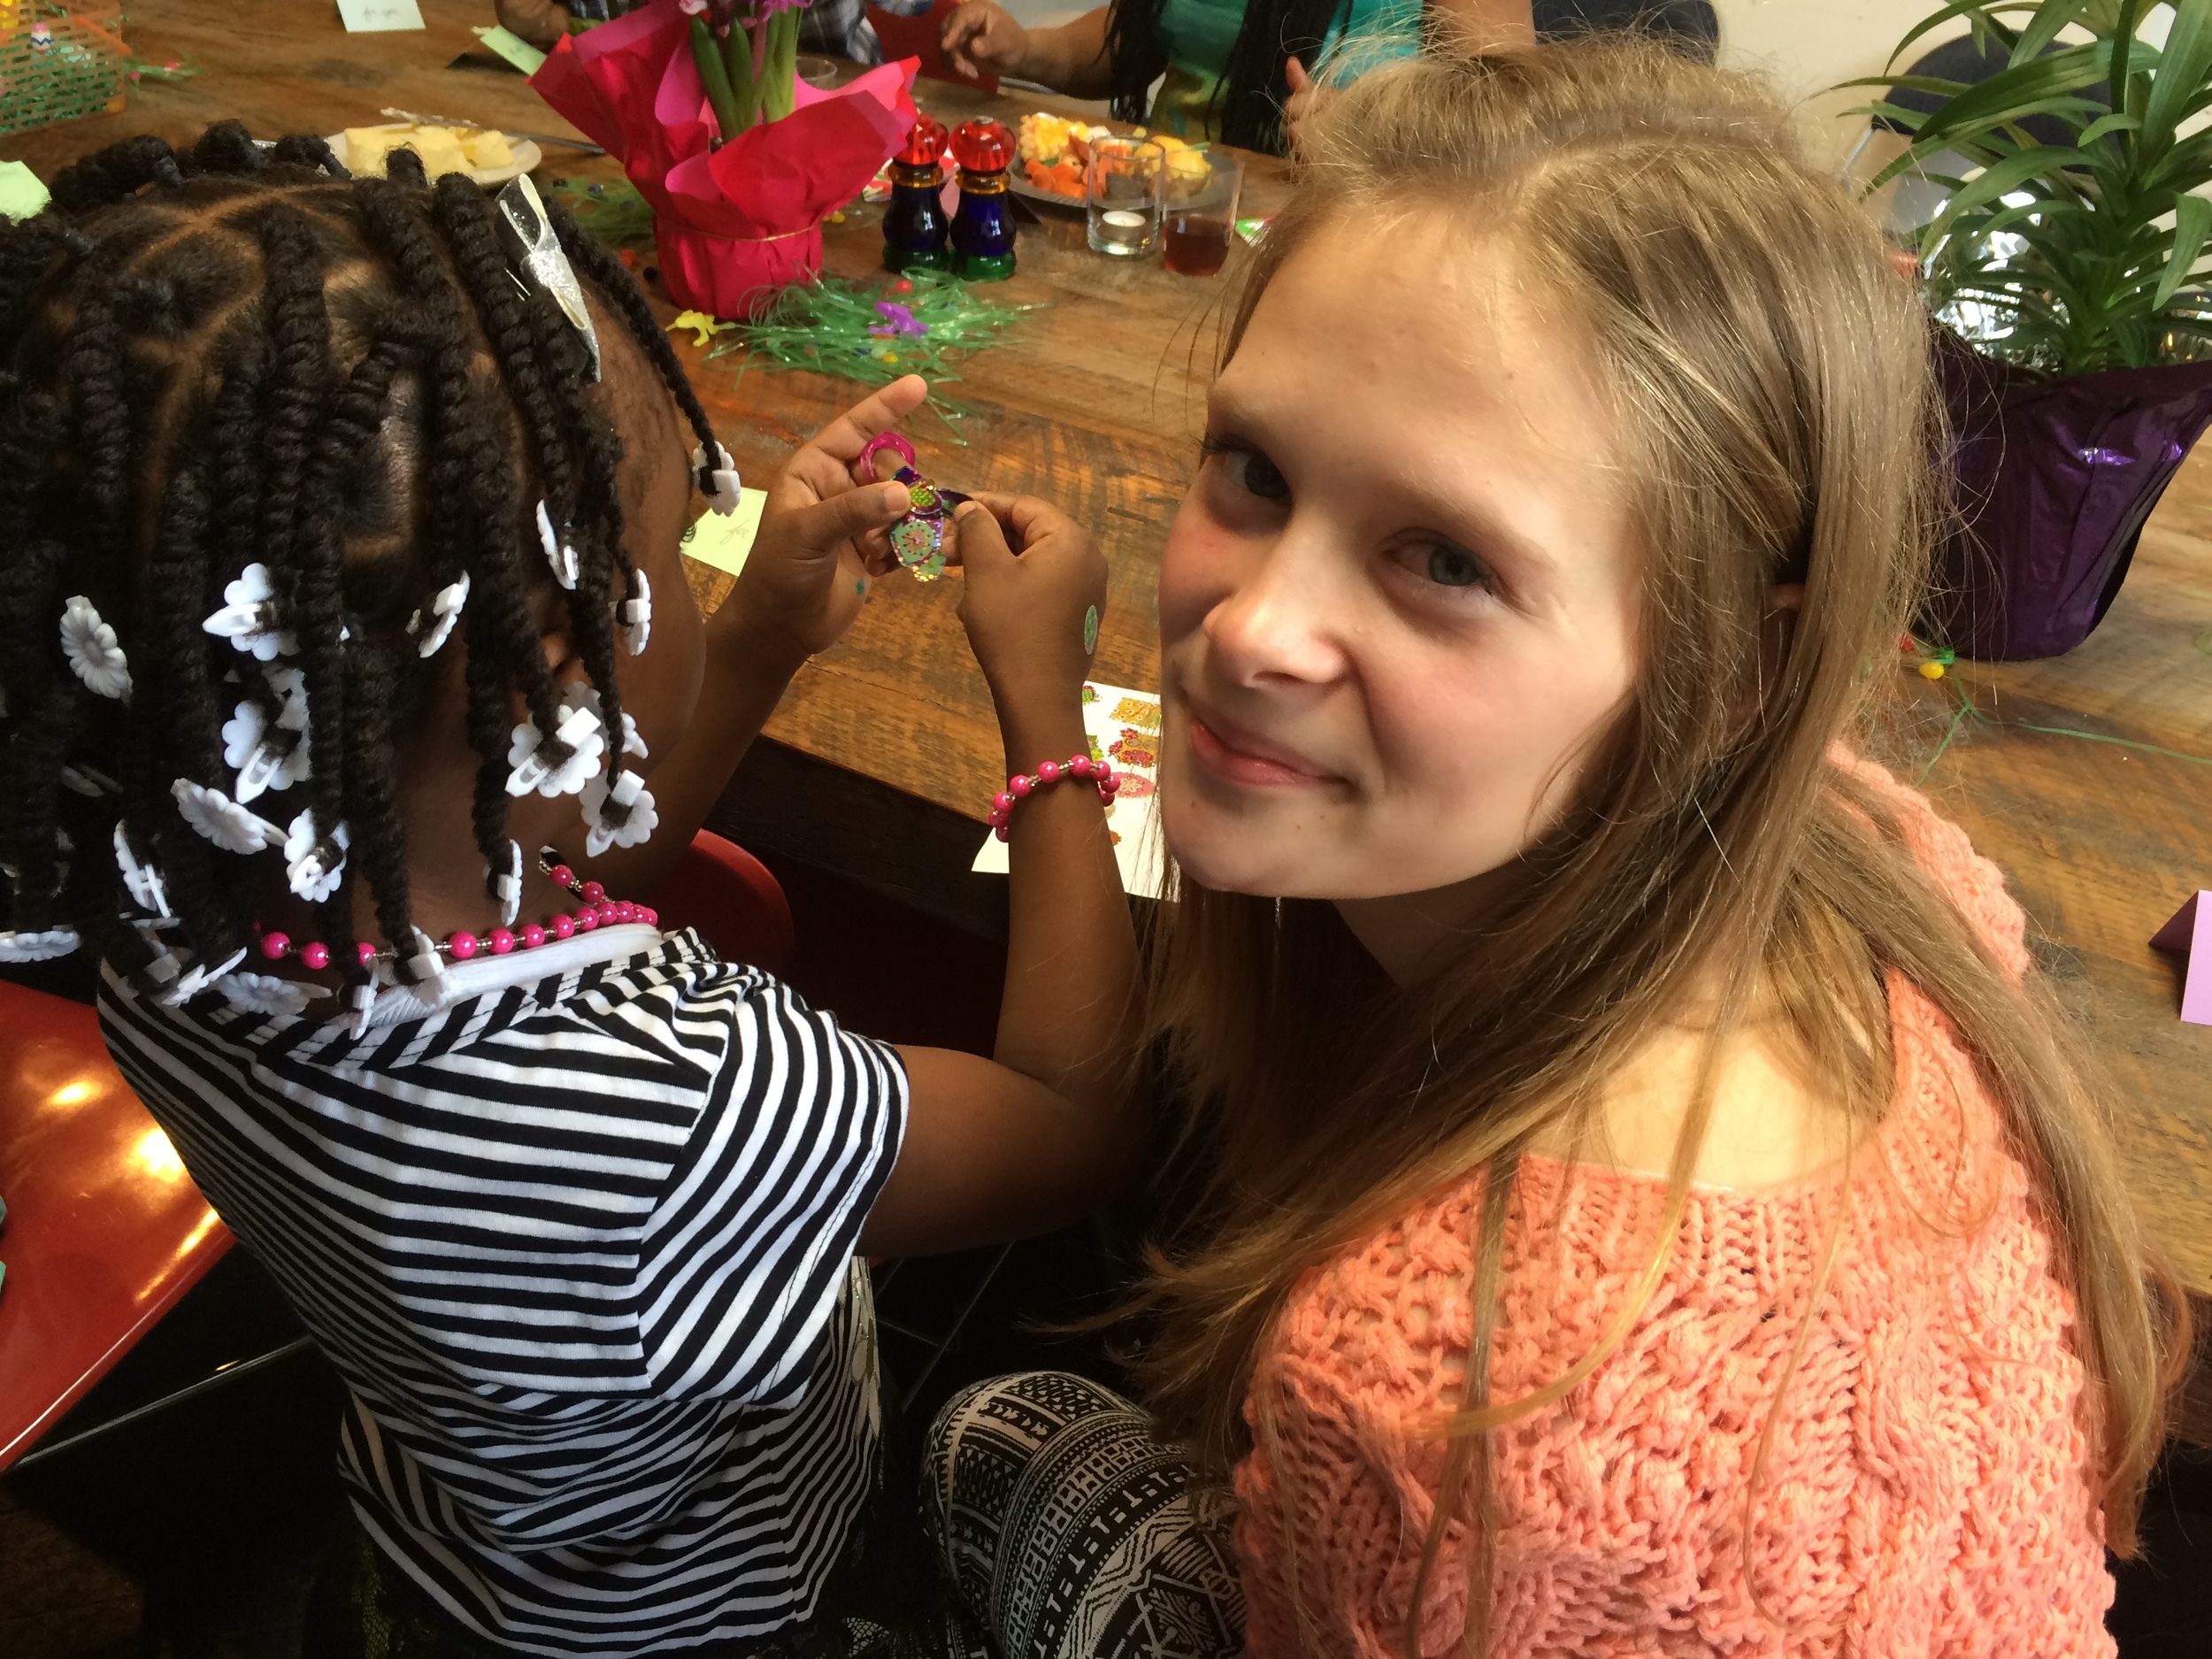 ONE OF OUR YOUNGER VOLUNTEERS, WHO ATTENDED WITH HER MOM ON EASTER HELPING THIS LITTLE ONE DESIGN AN EASTER EGG TO TAKE HOME #HOLIDAY #FAMILY #TRADITIONS